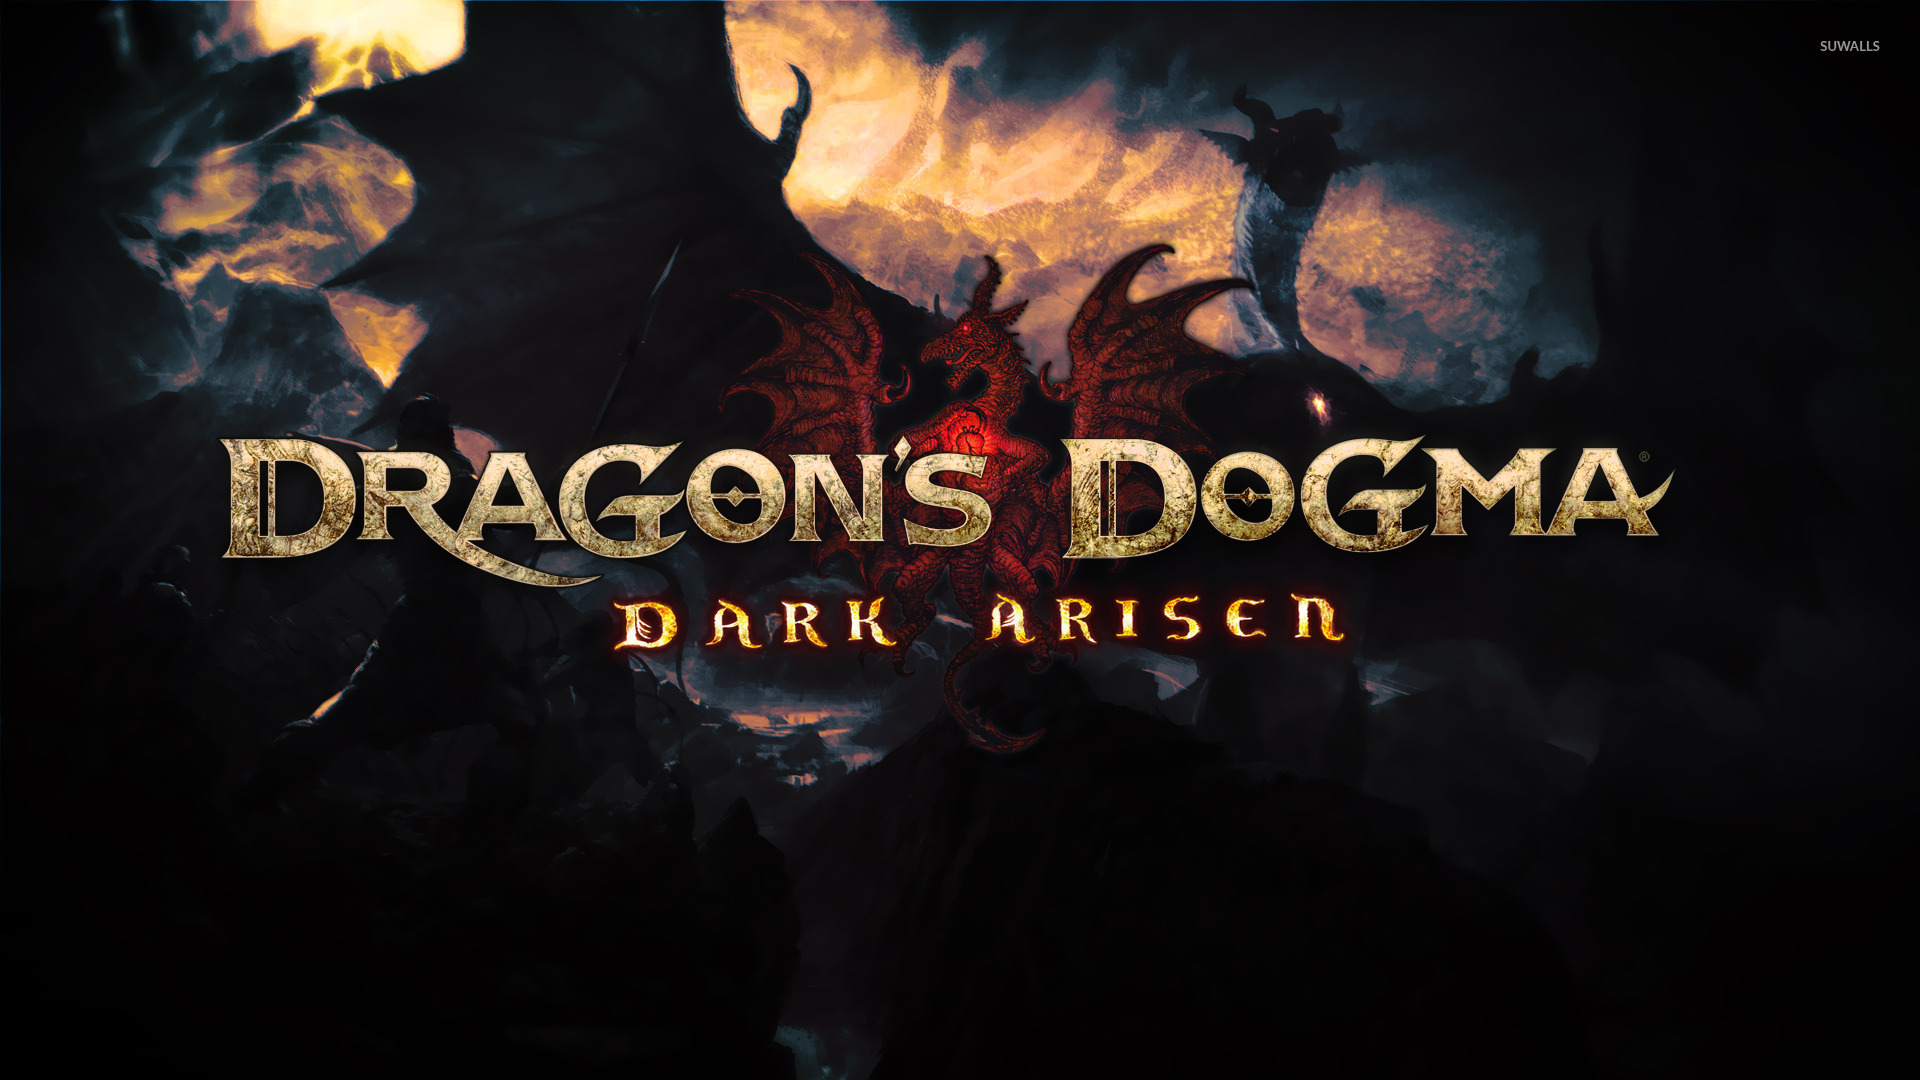 Dragon S Dogma Dark Arisen 2 Wallpaper Game Wallpapers 18505